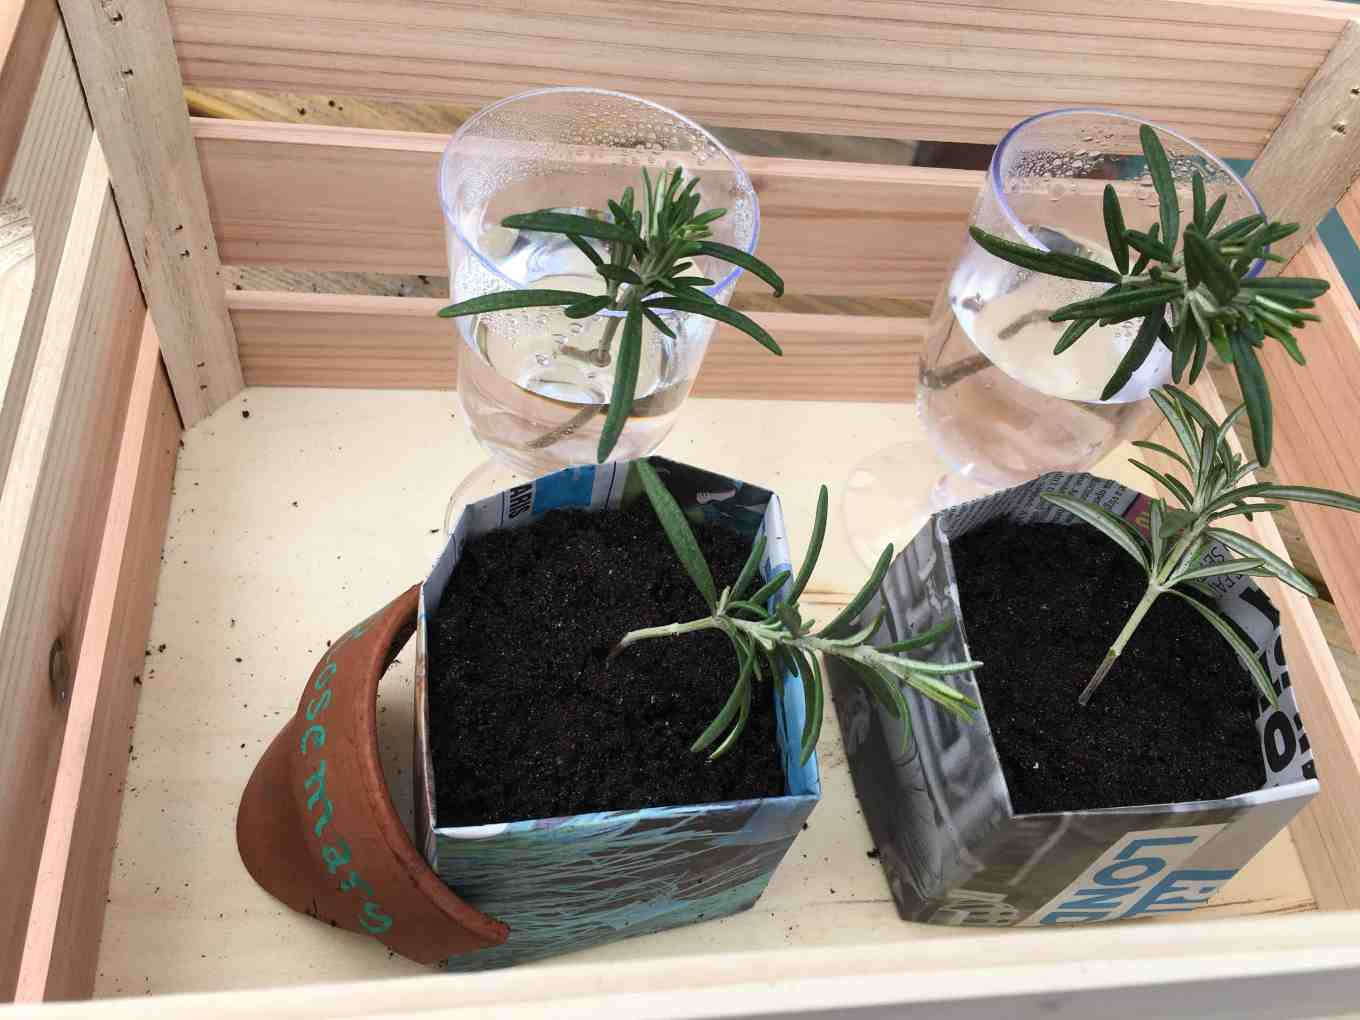 the experiment to see how well the rosemary cuttings propagate has started!